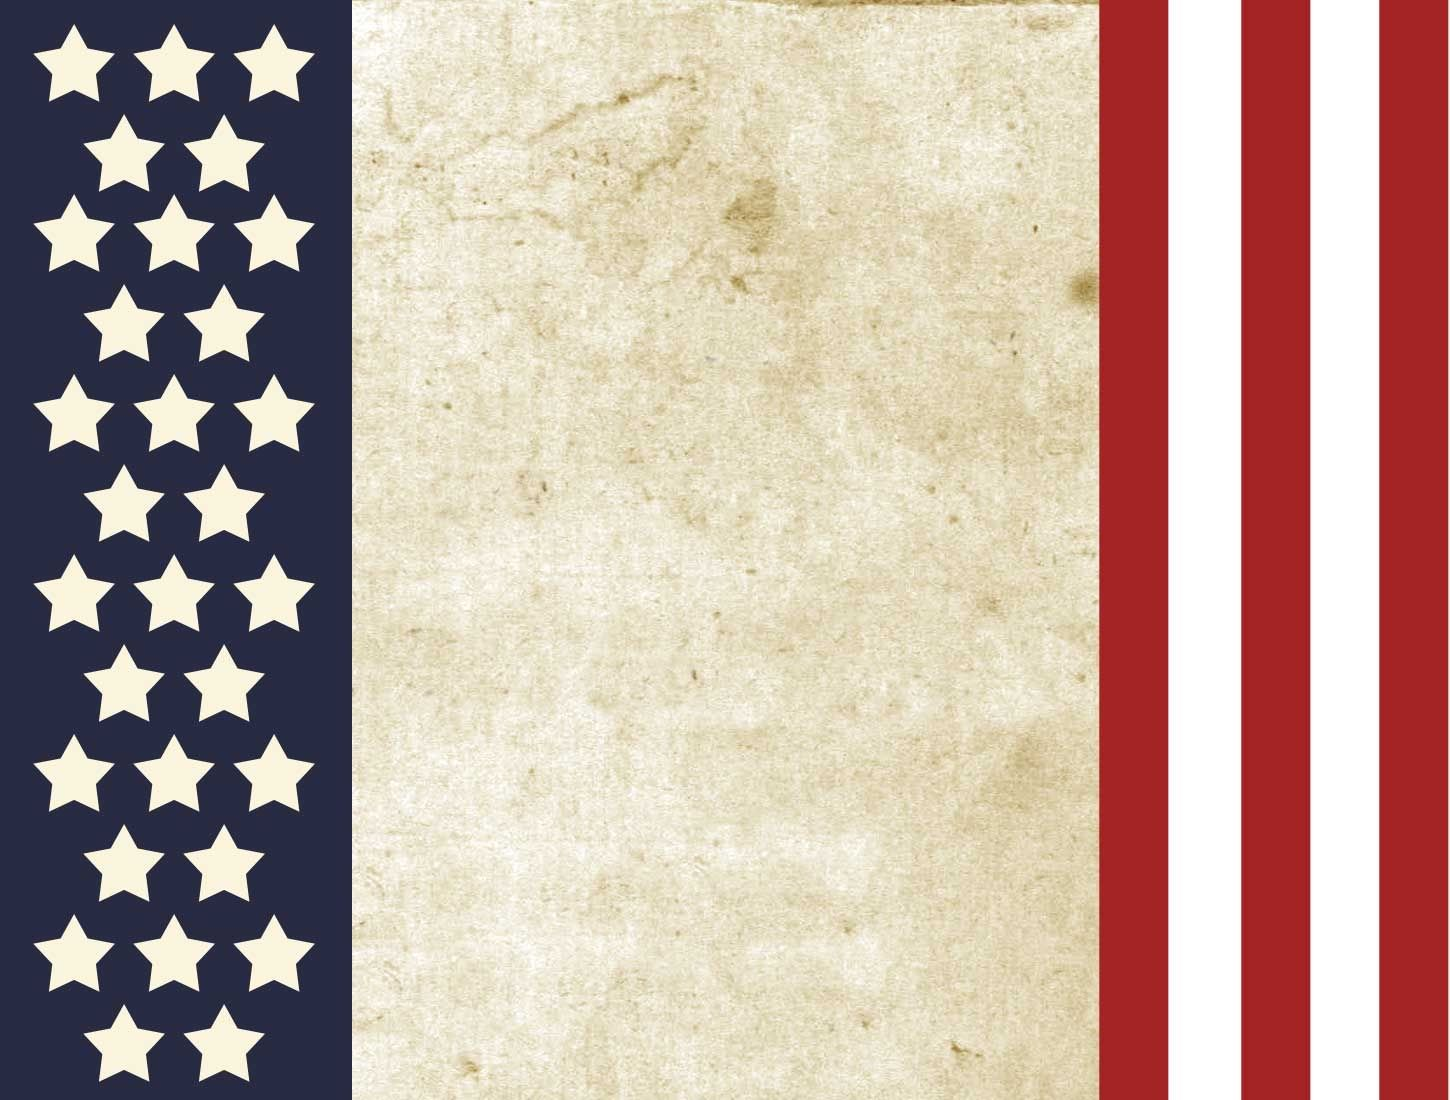 free patriotic backgrounds just download the image above host it